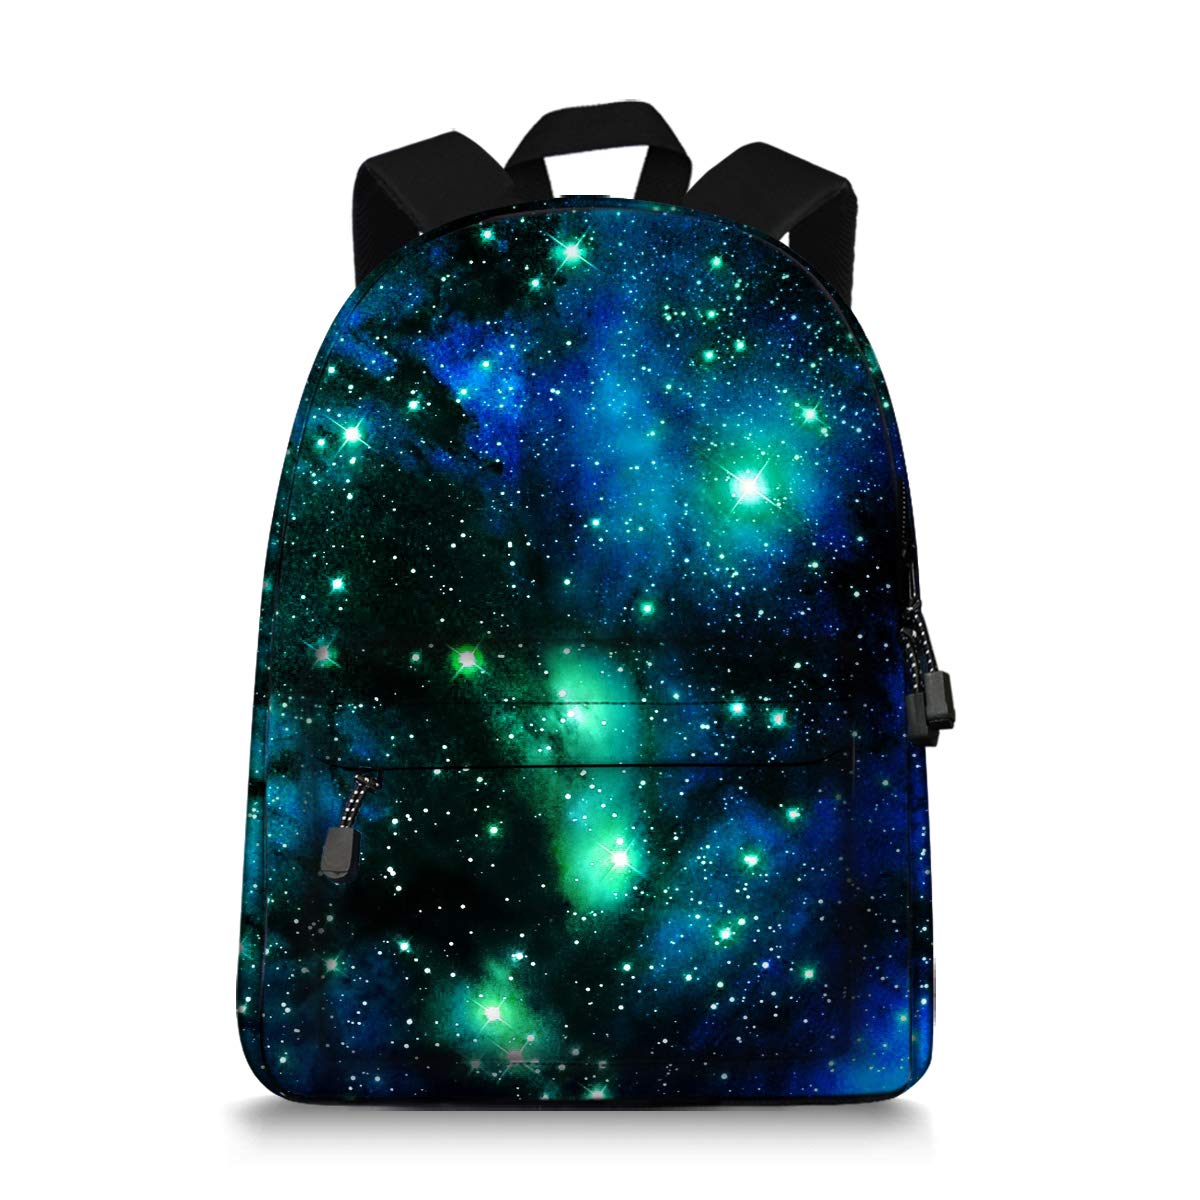 Amazon.com: Summeridea Cool Space Starry Sky - Mochila ...